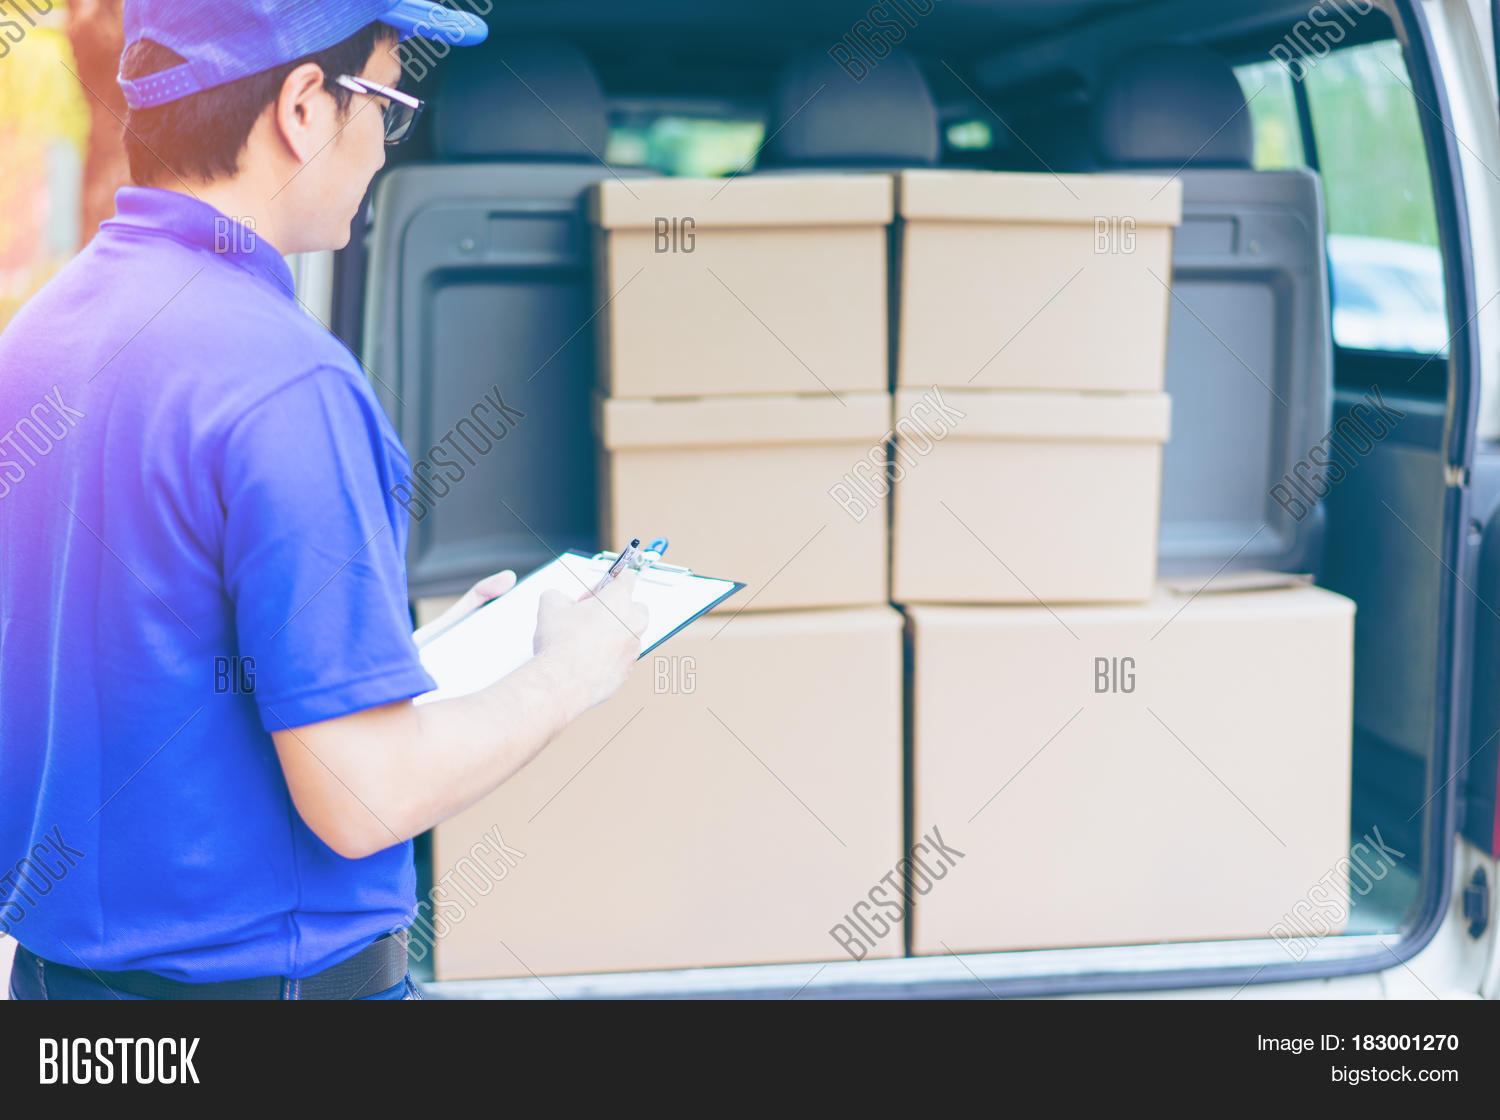 Delivery Concept - Image & Photo (Free Trial) | Bigstock